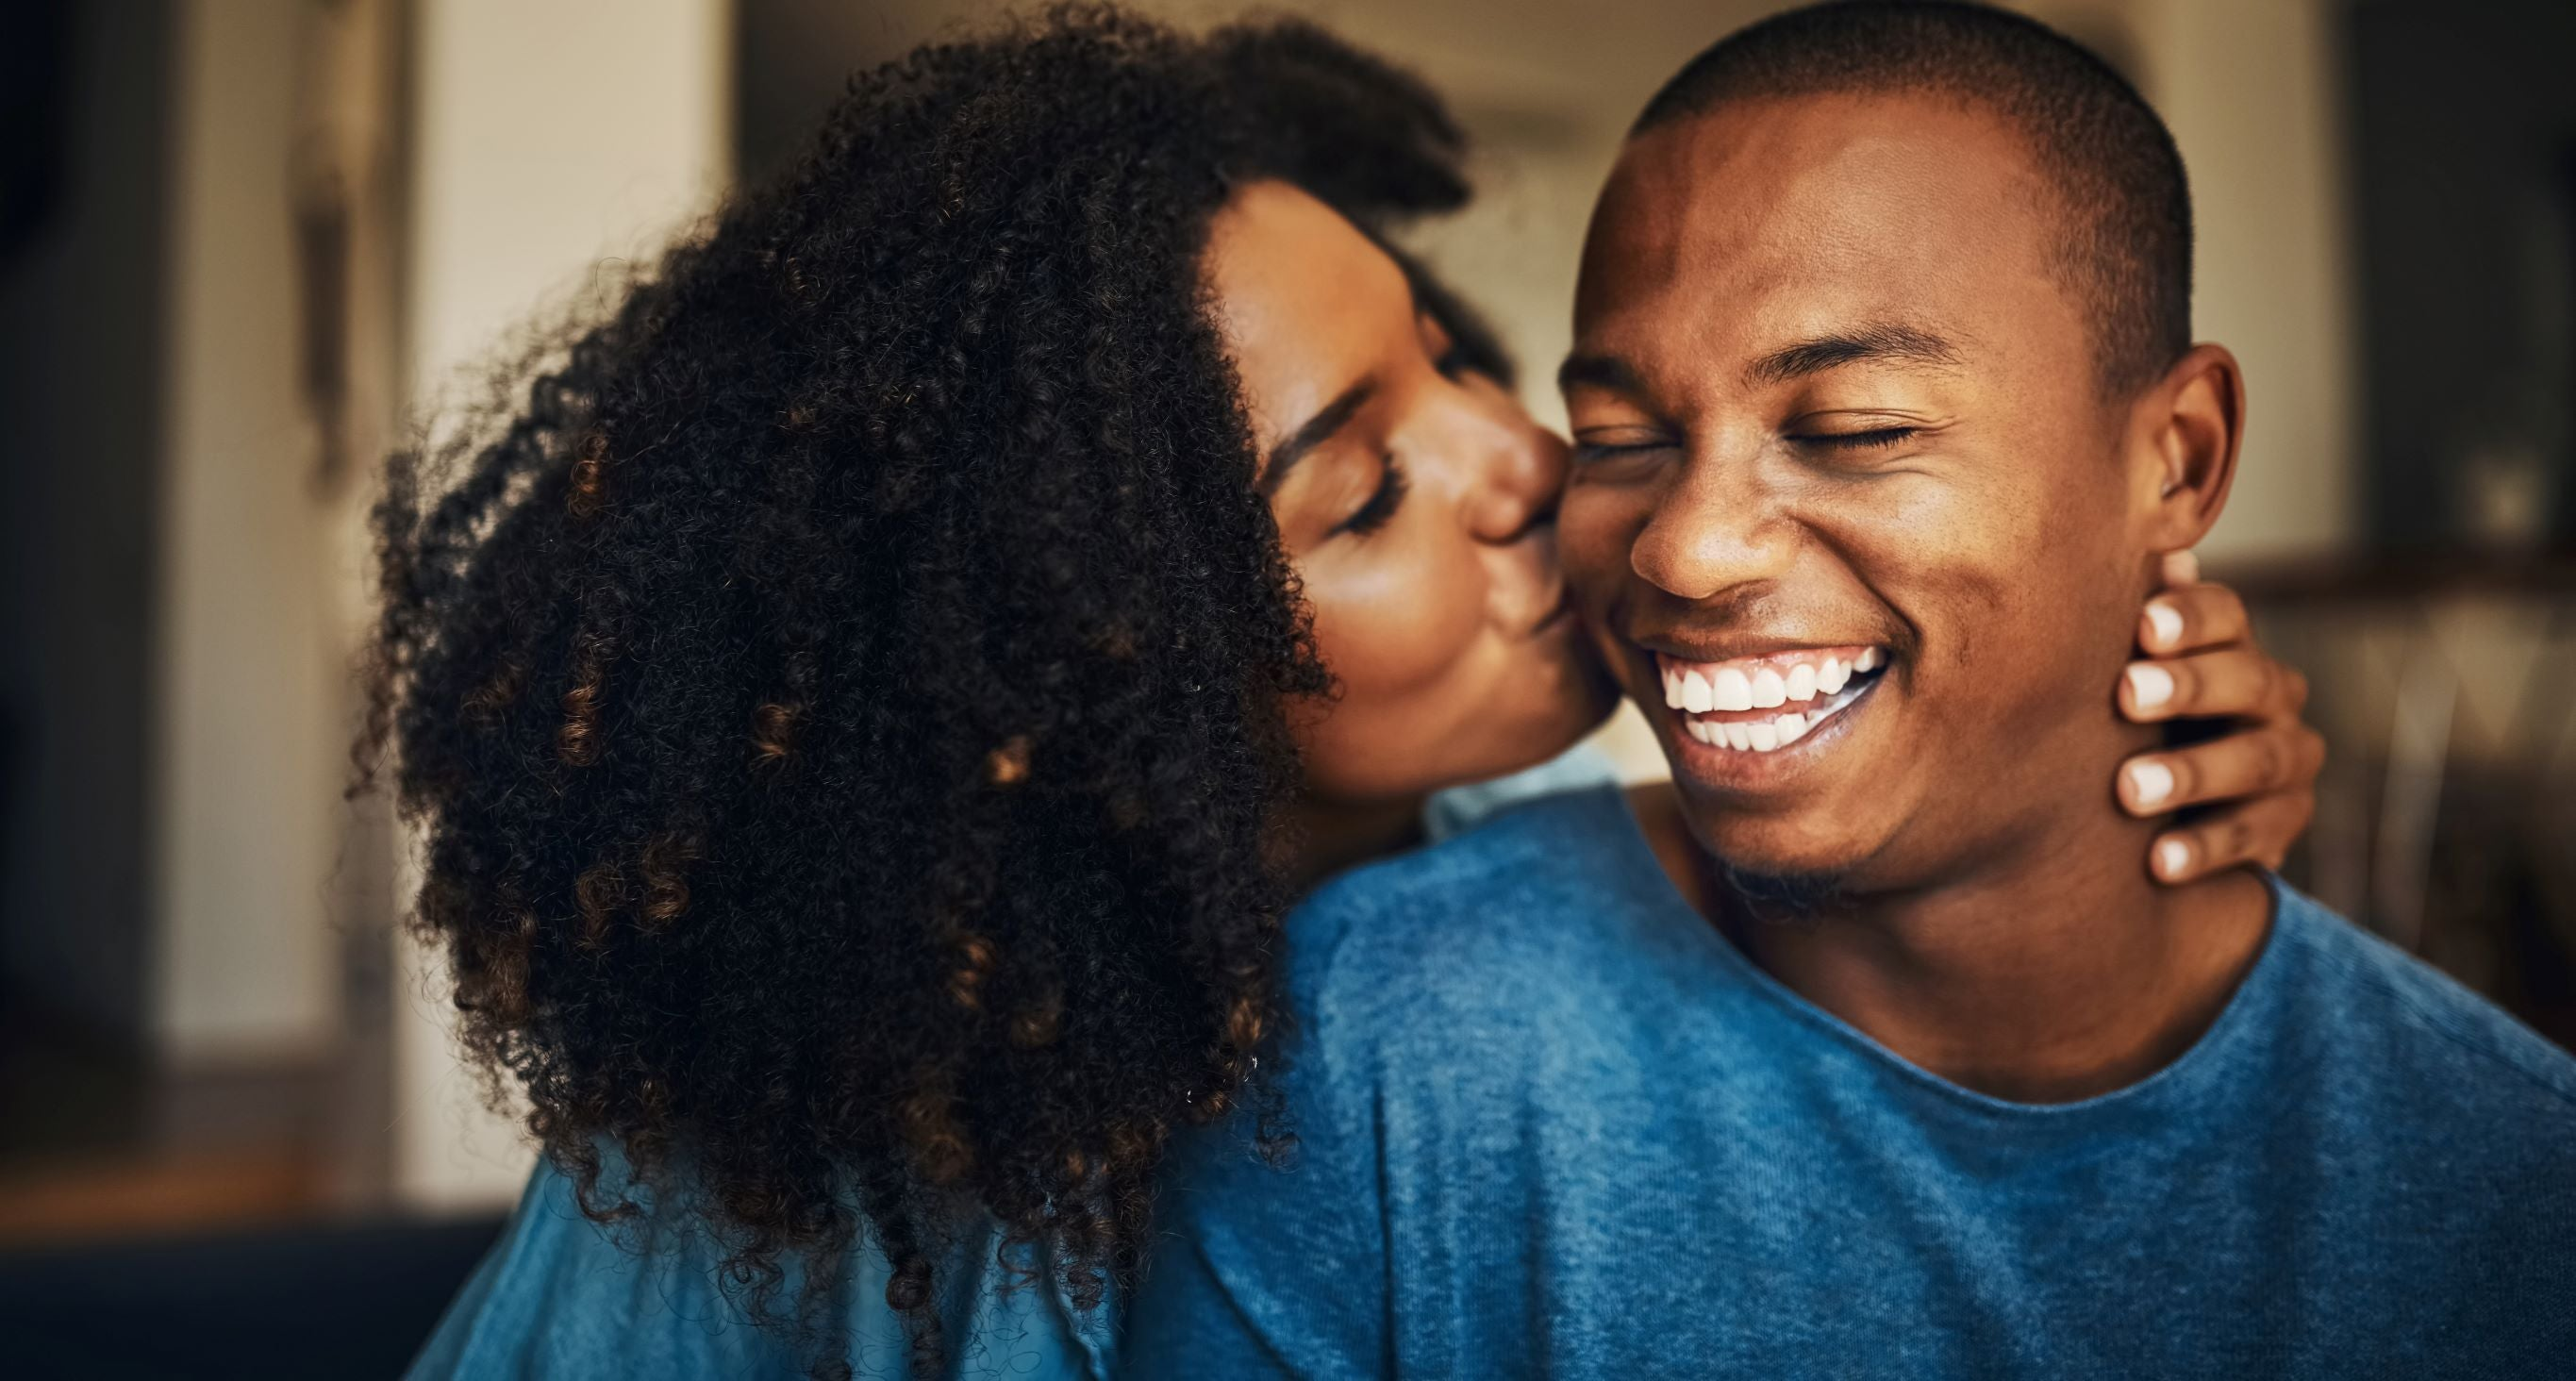 Romantic Ways to De-Stress and Deepen Your Relationship